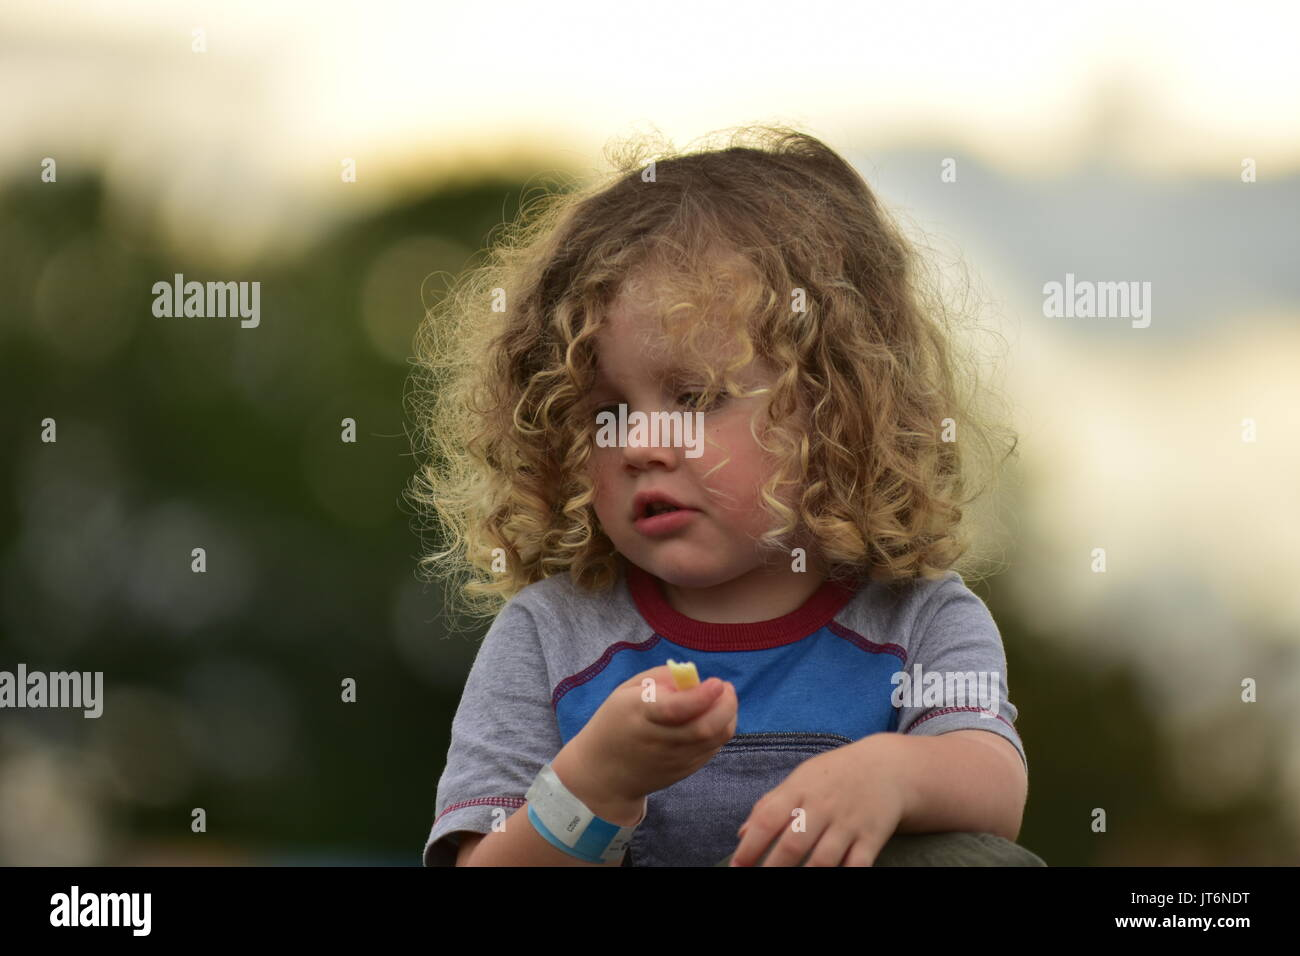 A curly-haired girl eating outside. - Stock Image